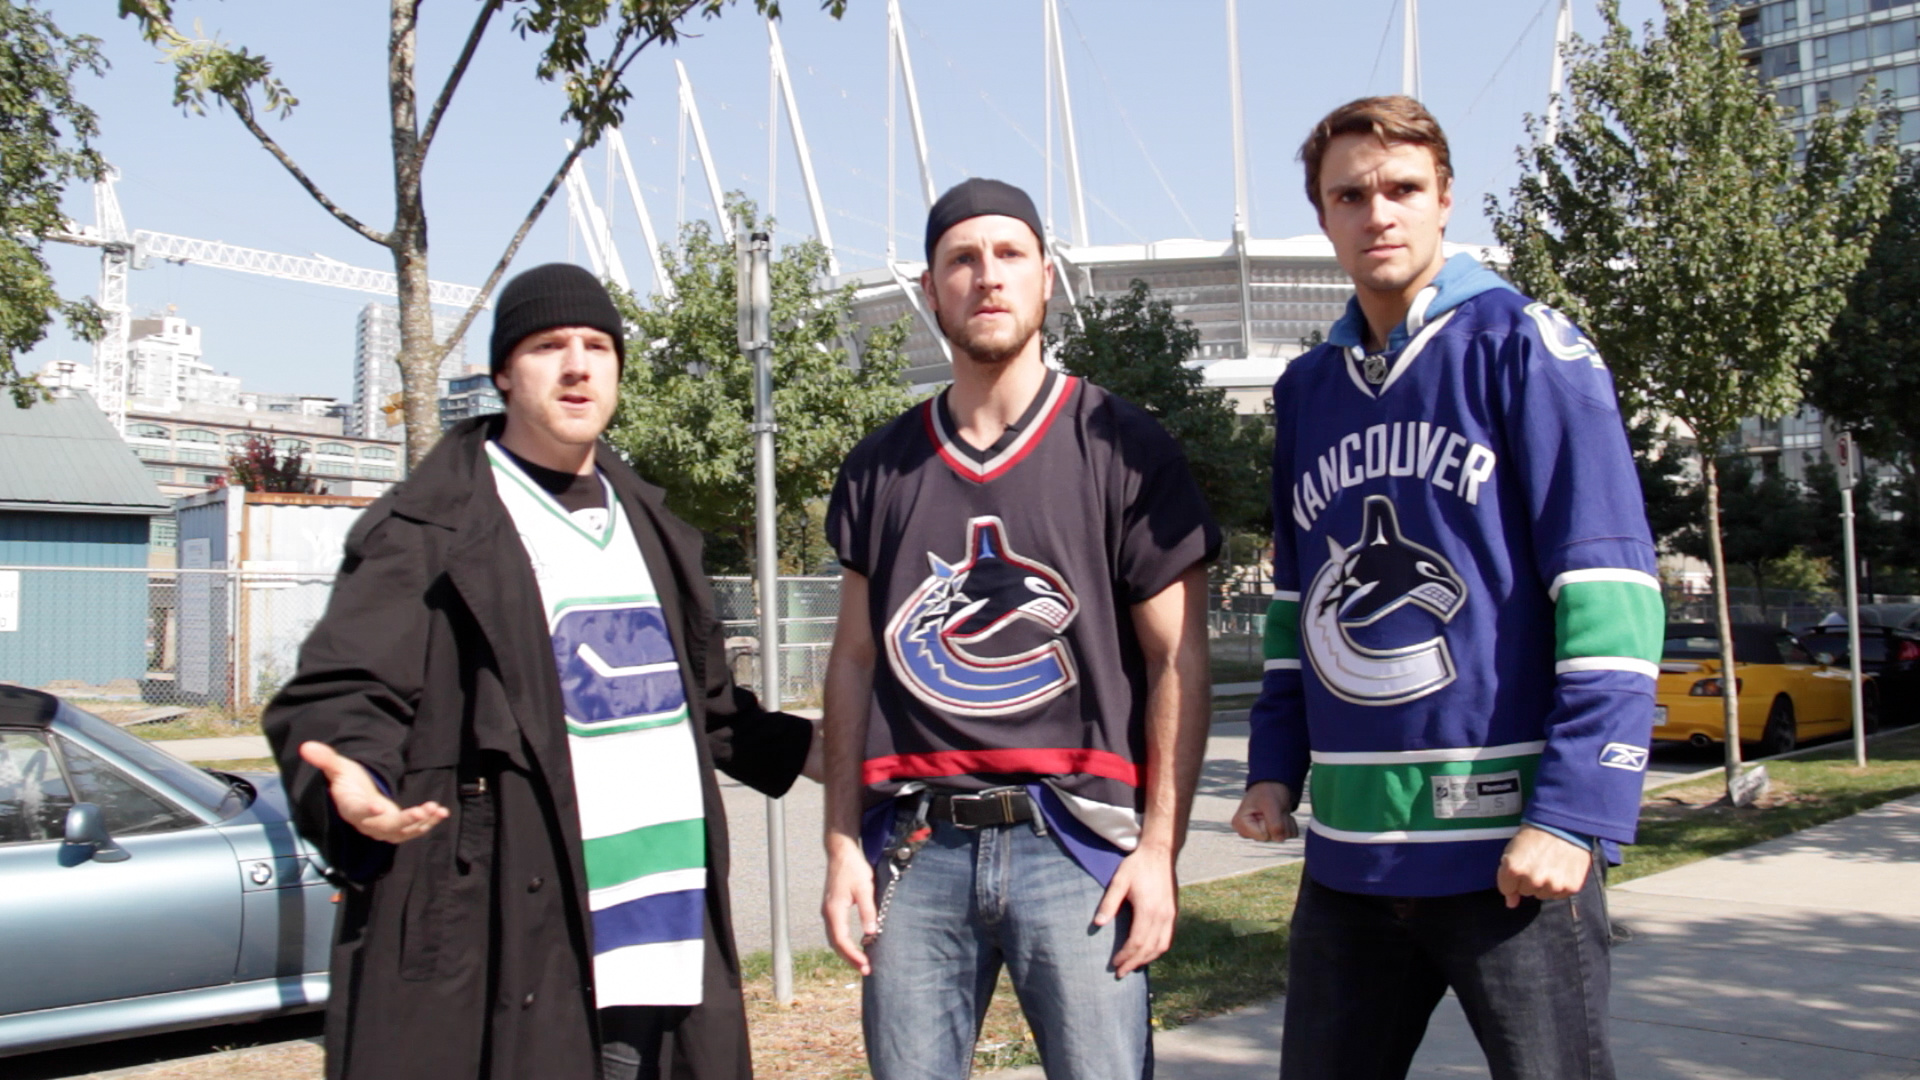 Disgruntled Canucks' Fans Ready to Riot